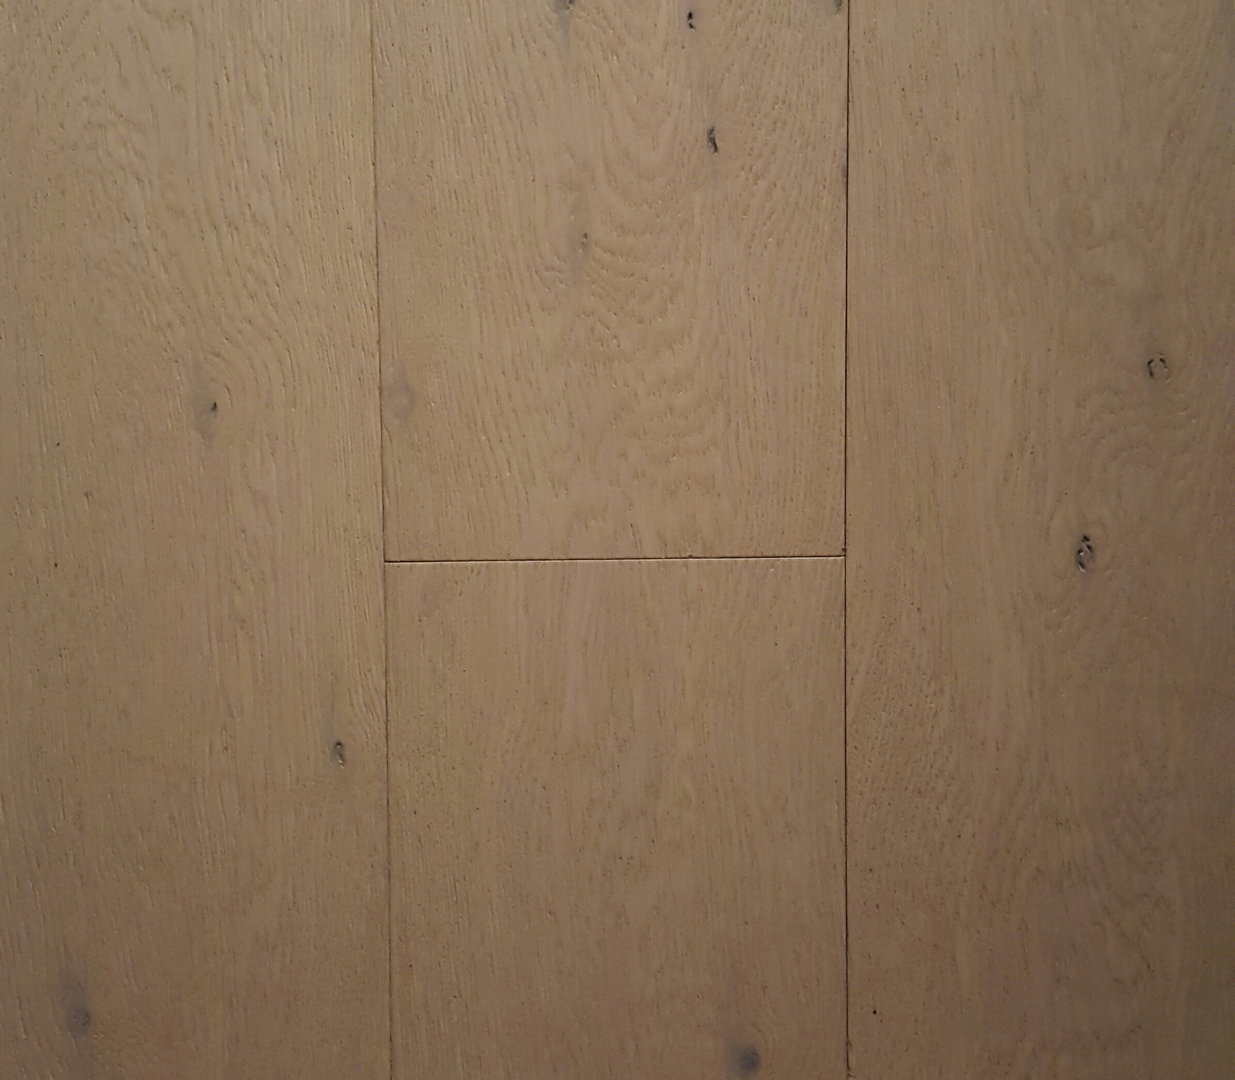 "Milan Collection 6-1/2"" x 7/16"" European Oak Engineered Hardwood Flooring - Maggiano"